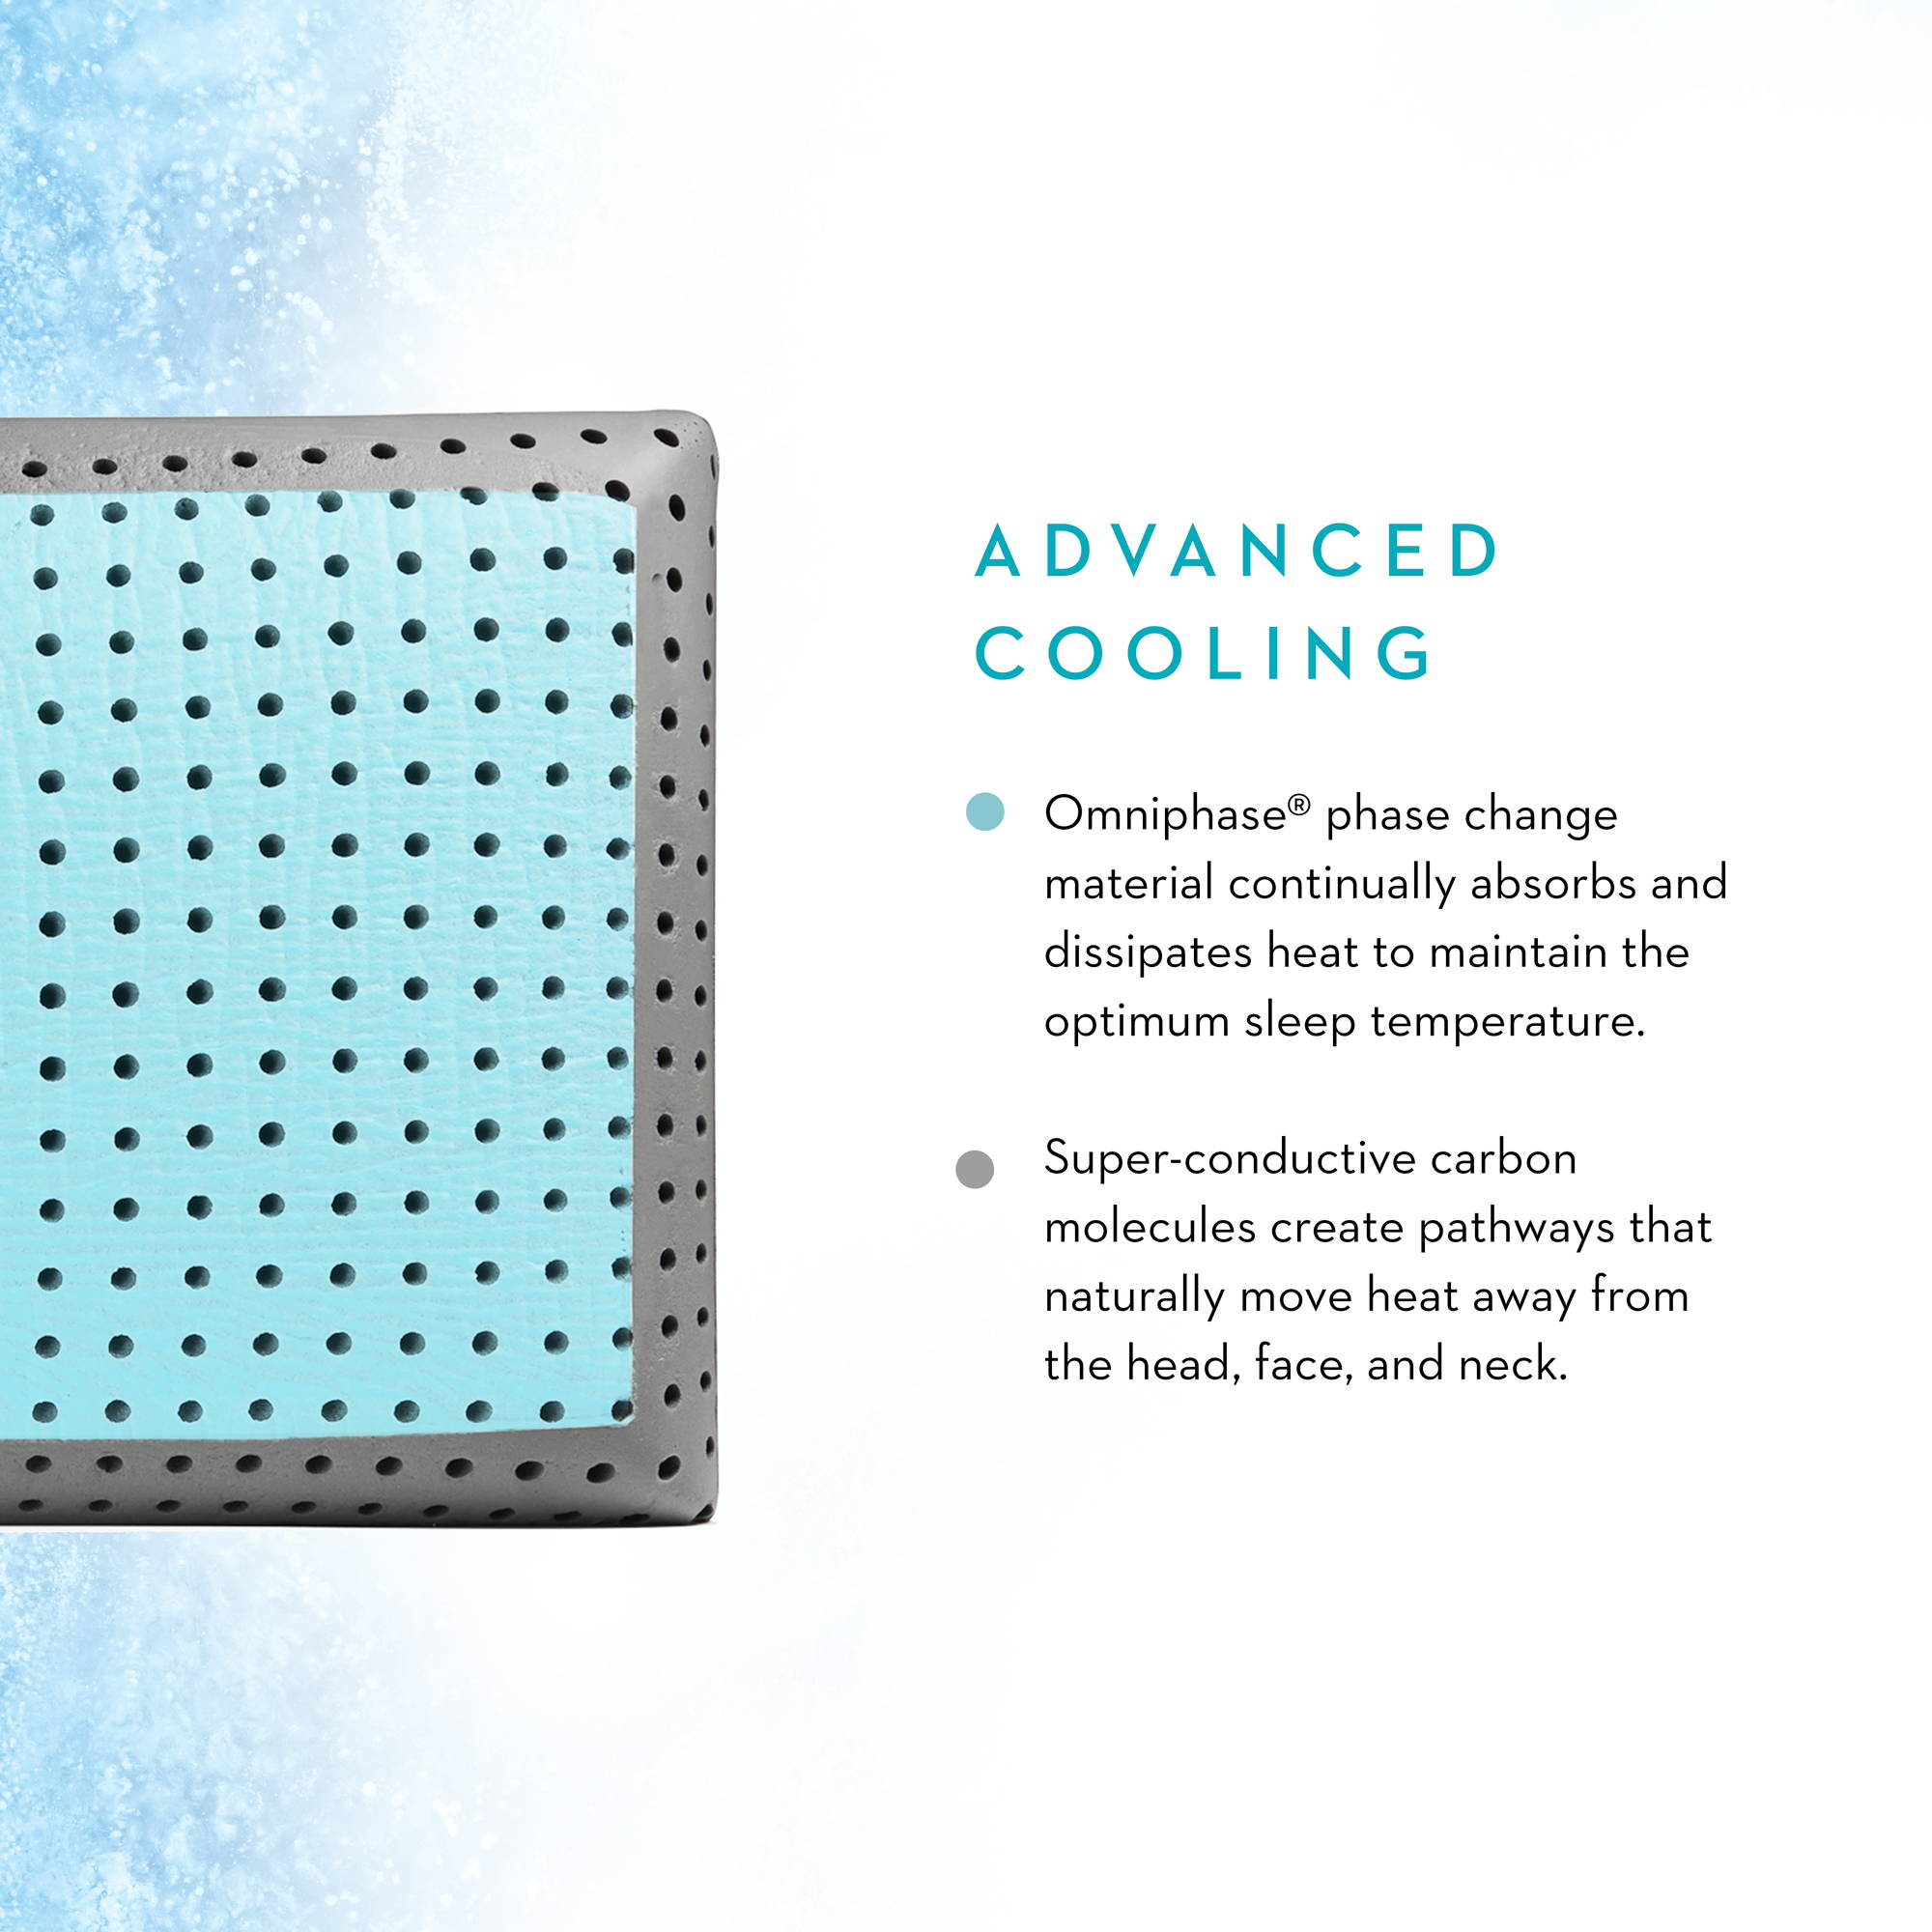 advanced cooling pillow technology